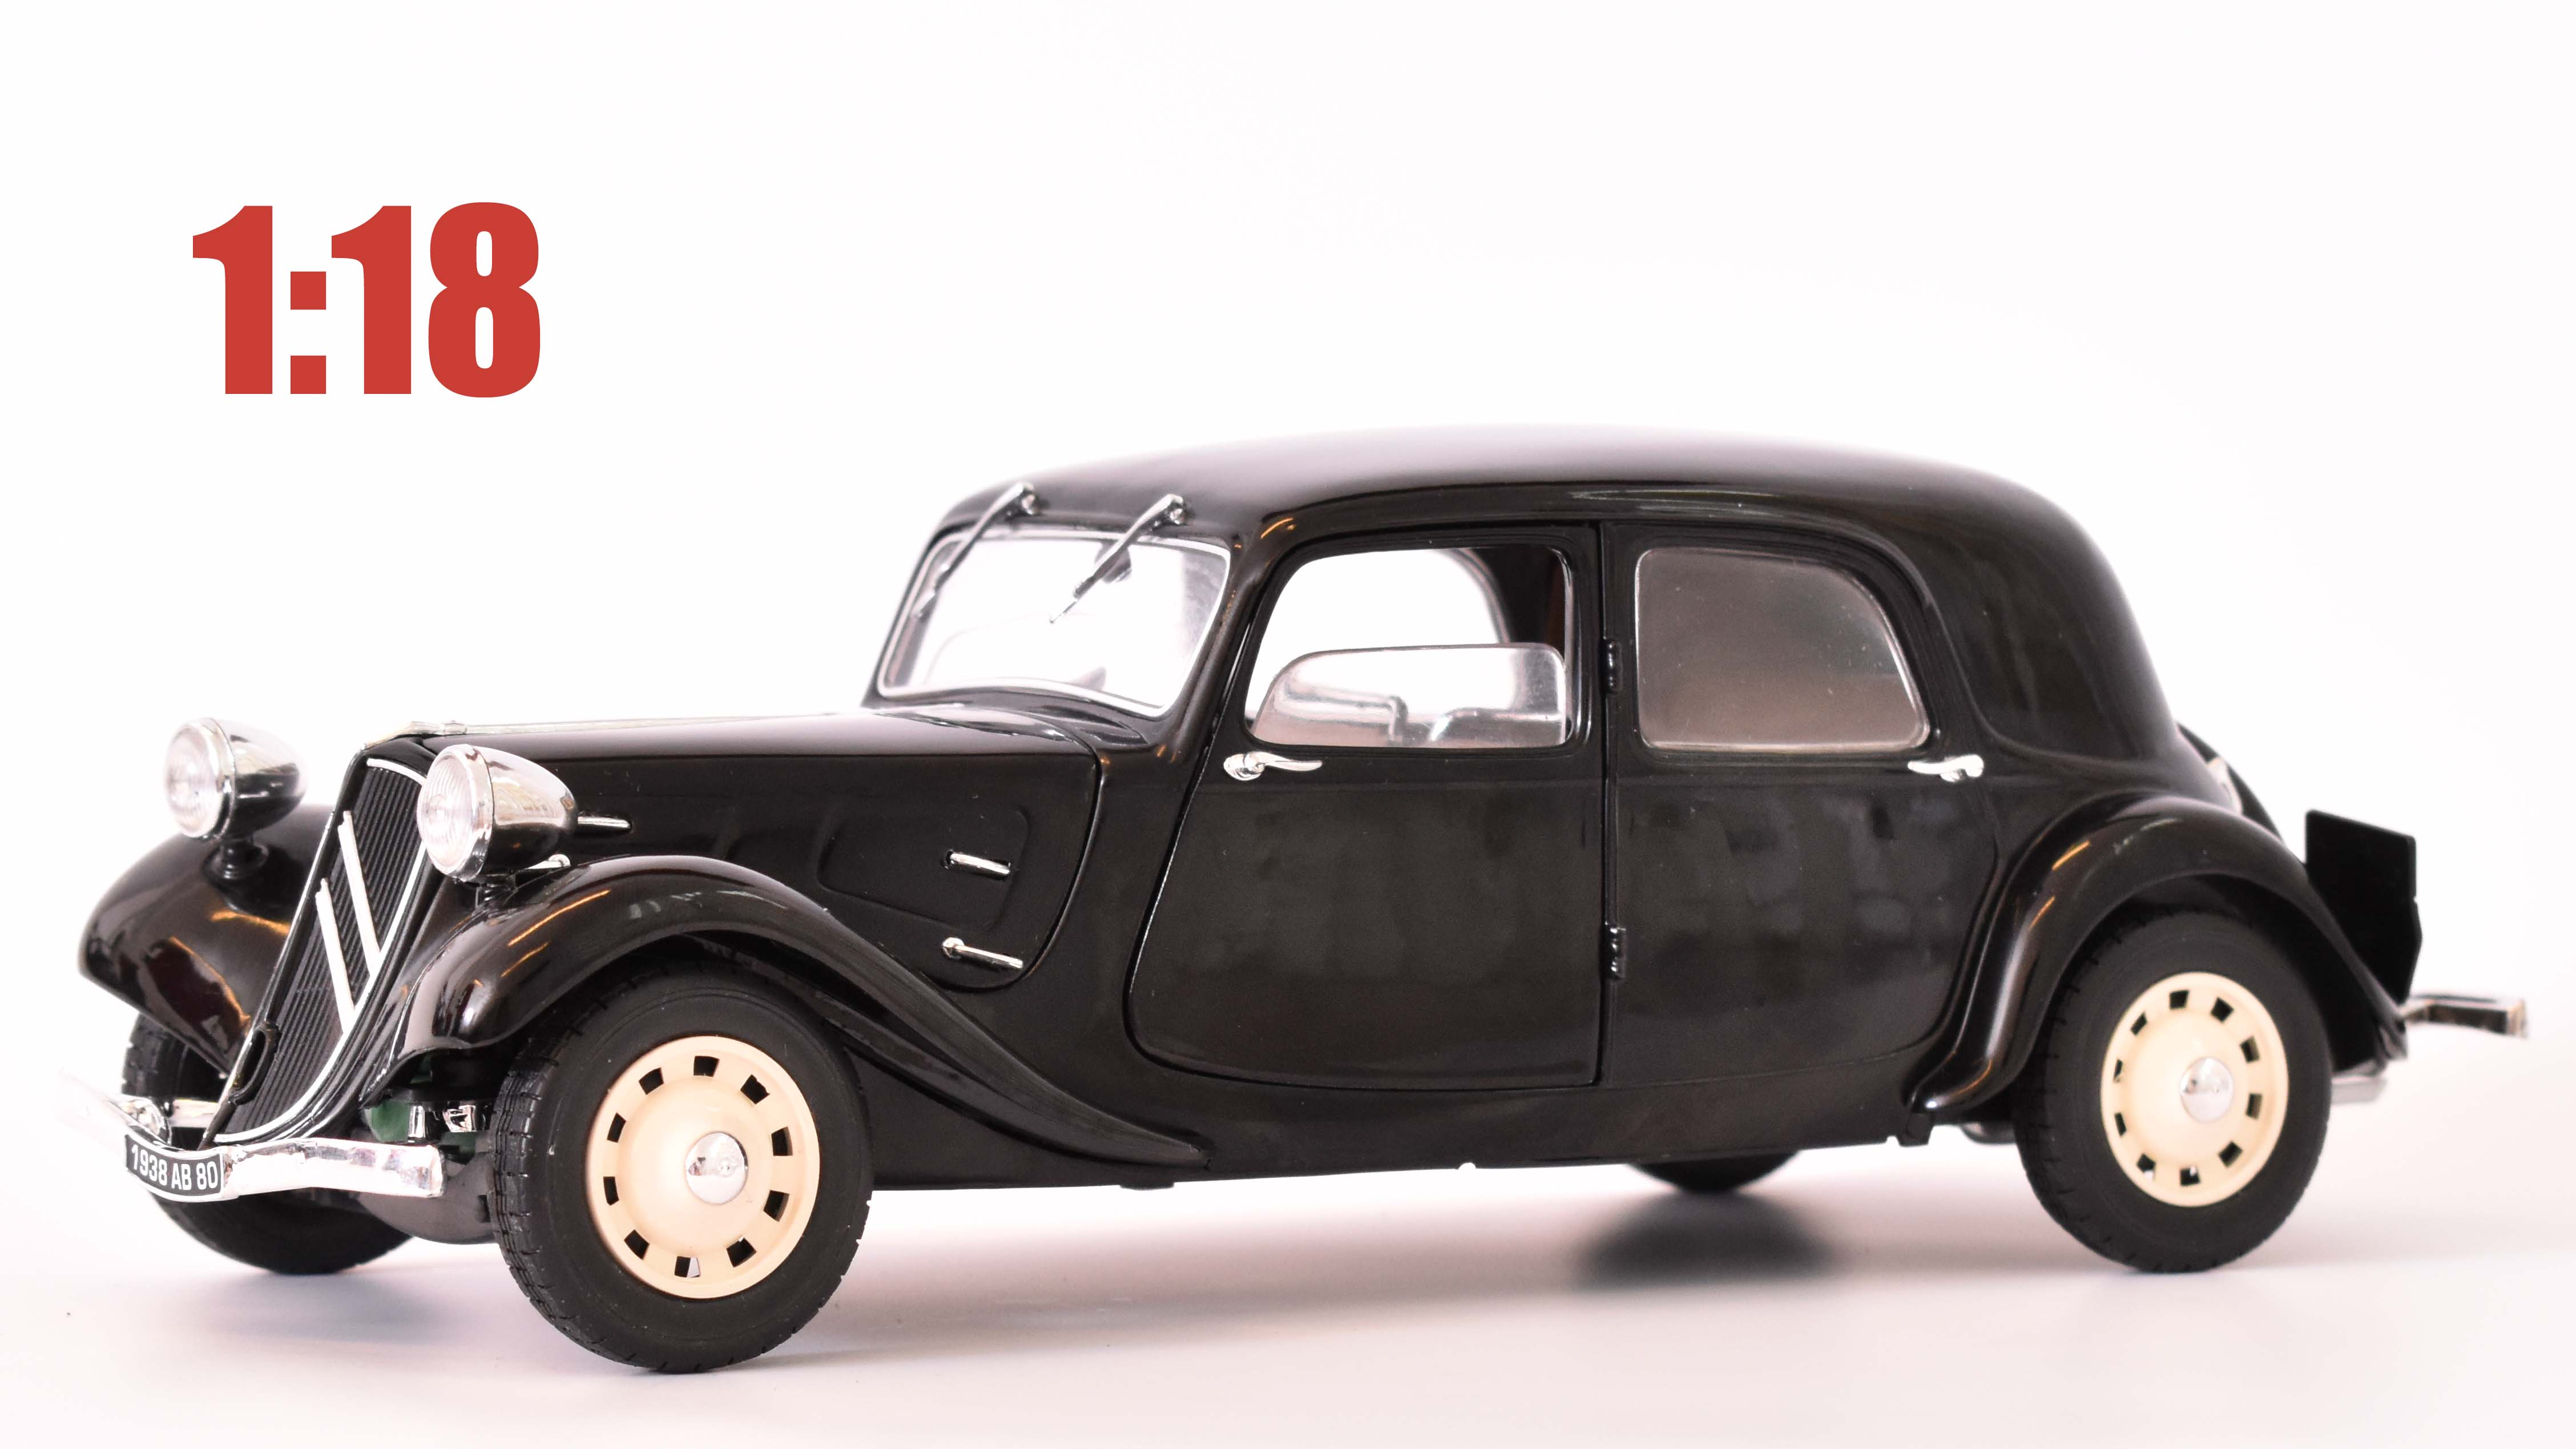 Citroen Traction 11CV - 1937 1:18 - Solido časopis AutoModels s modelem